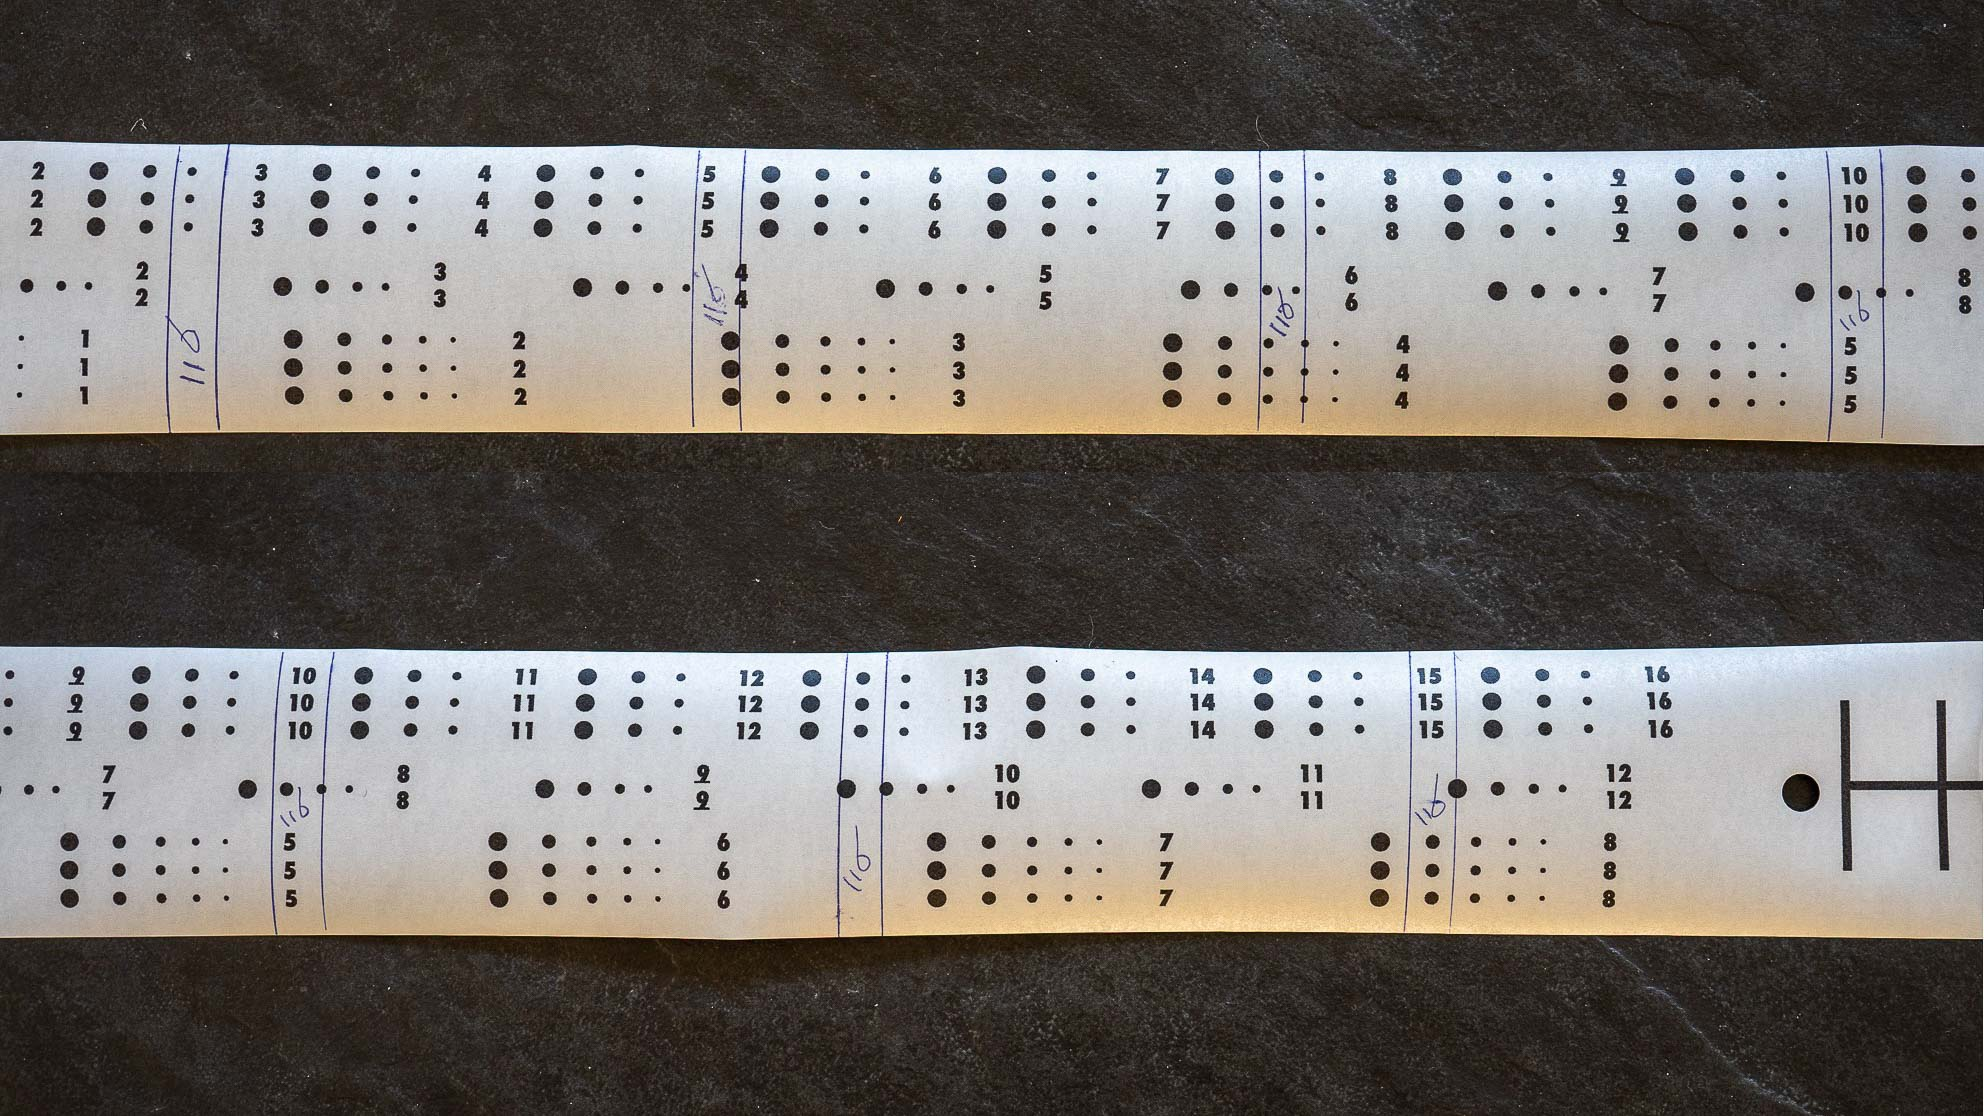 Backing paper of 120 film with spacing of 116 film indicated by hand.